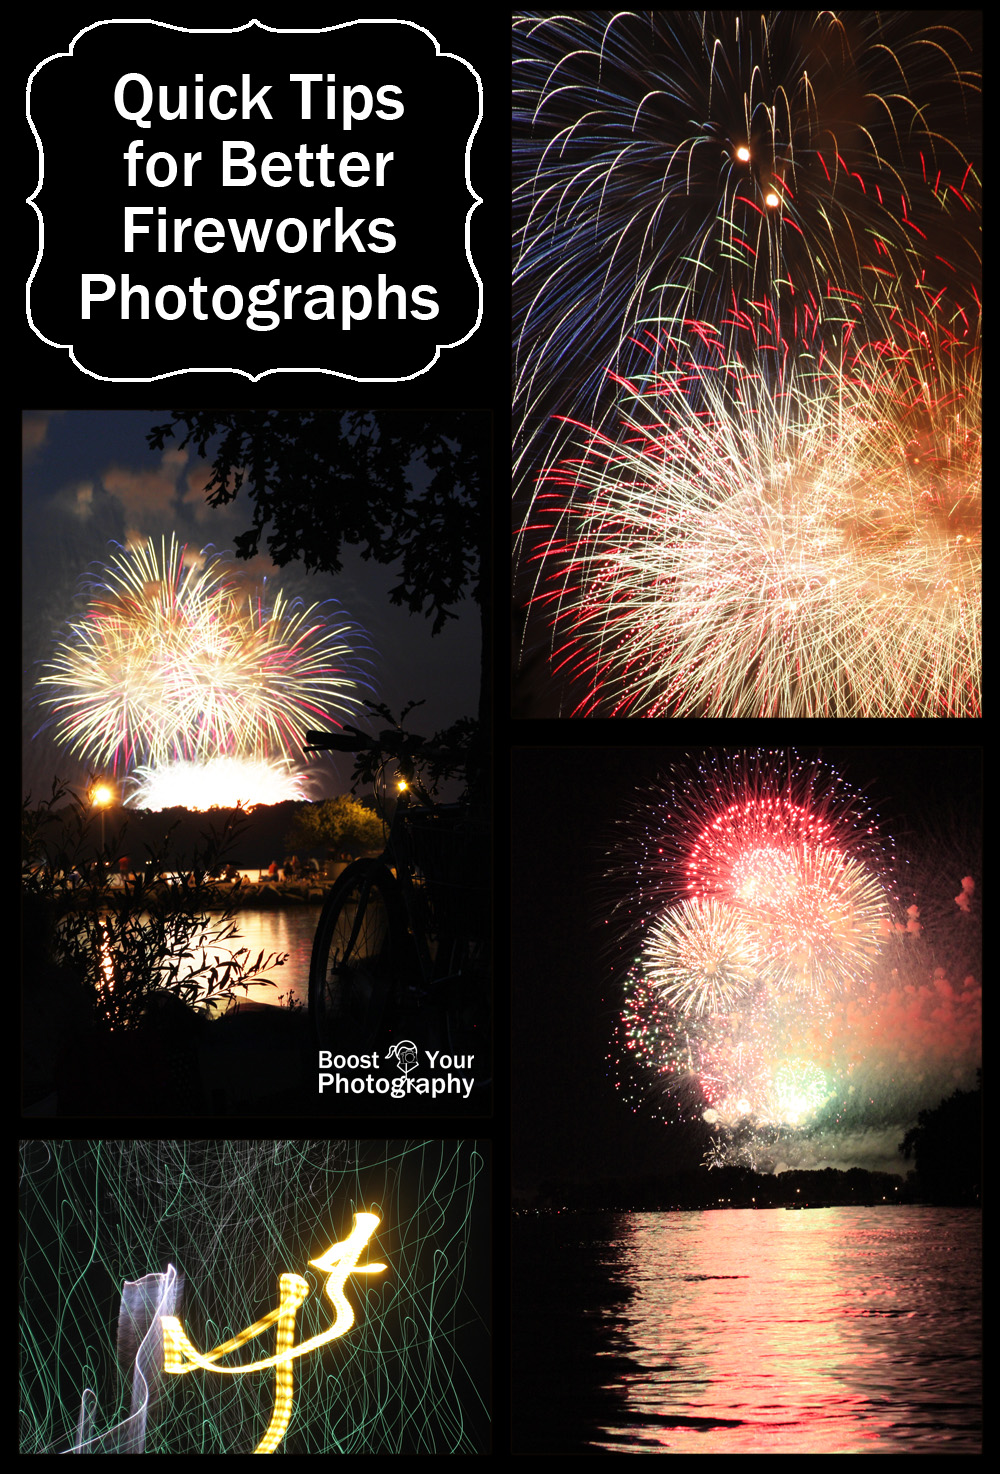 Quick Tips for Better Fireworks Photographs | Boost Your Photography